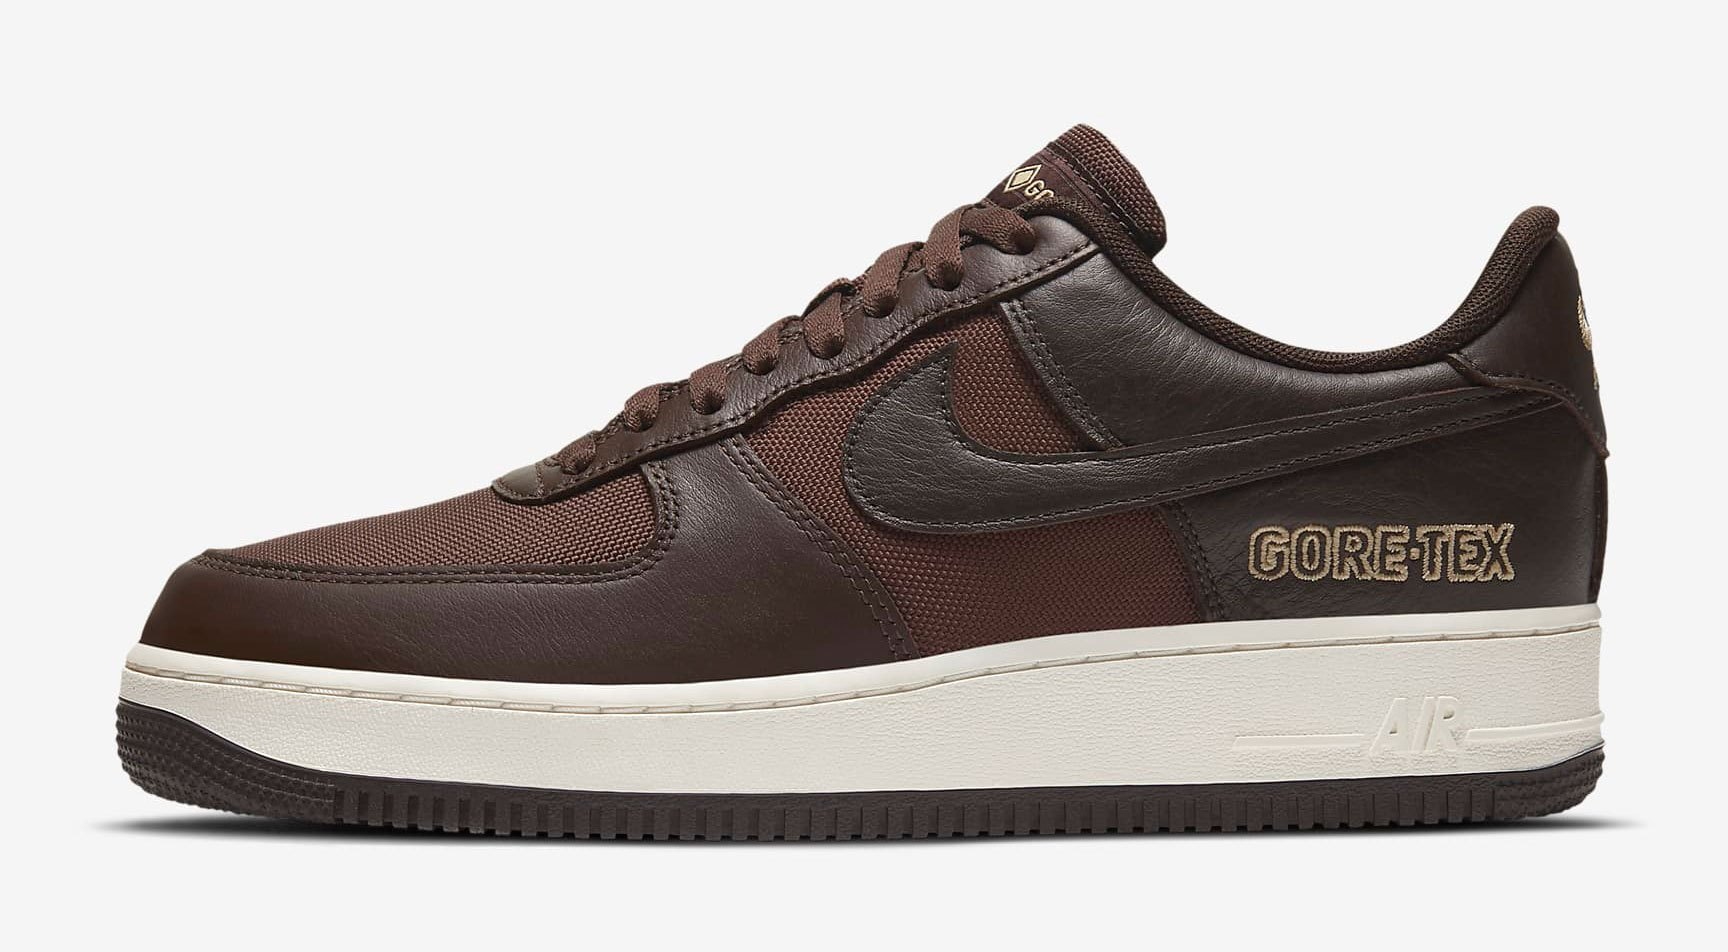 nike-air-force-1-goretex-baroque-brown